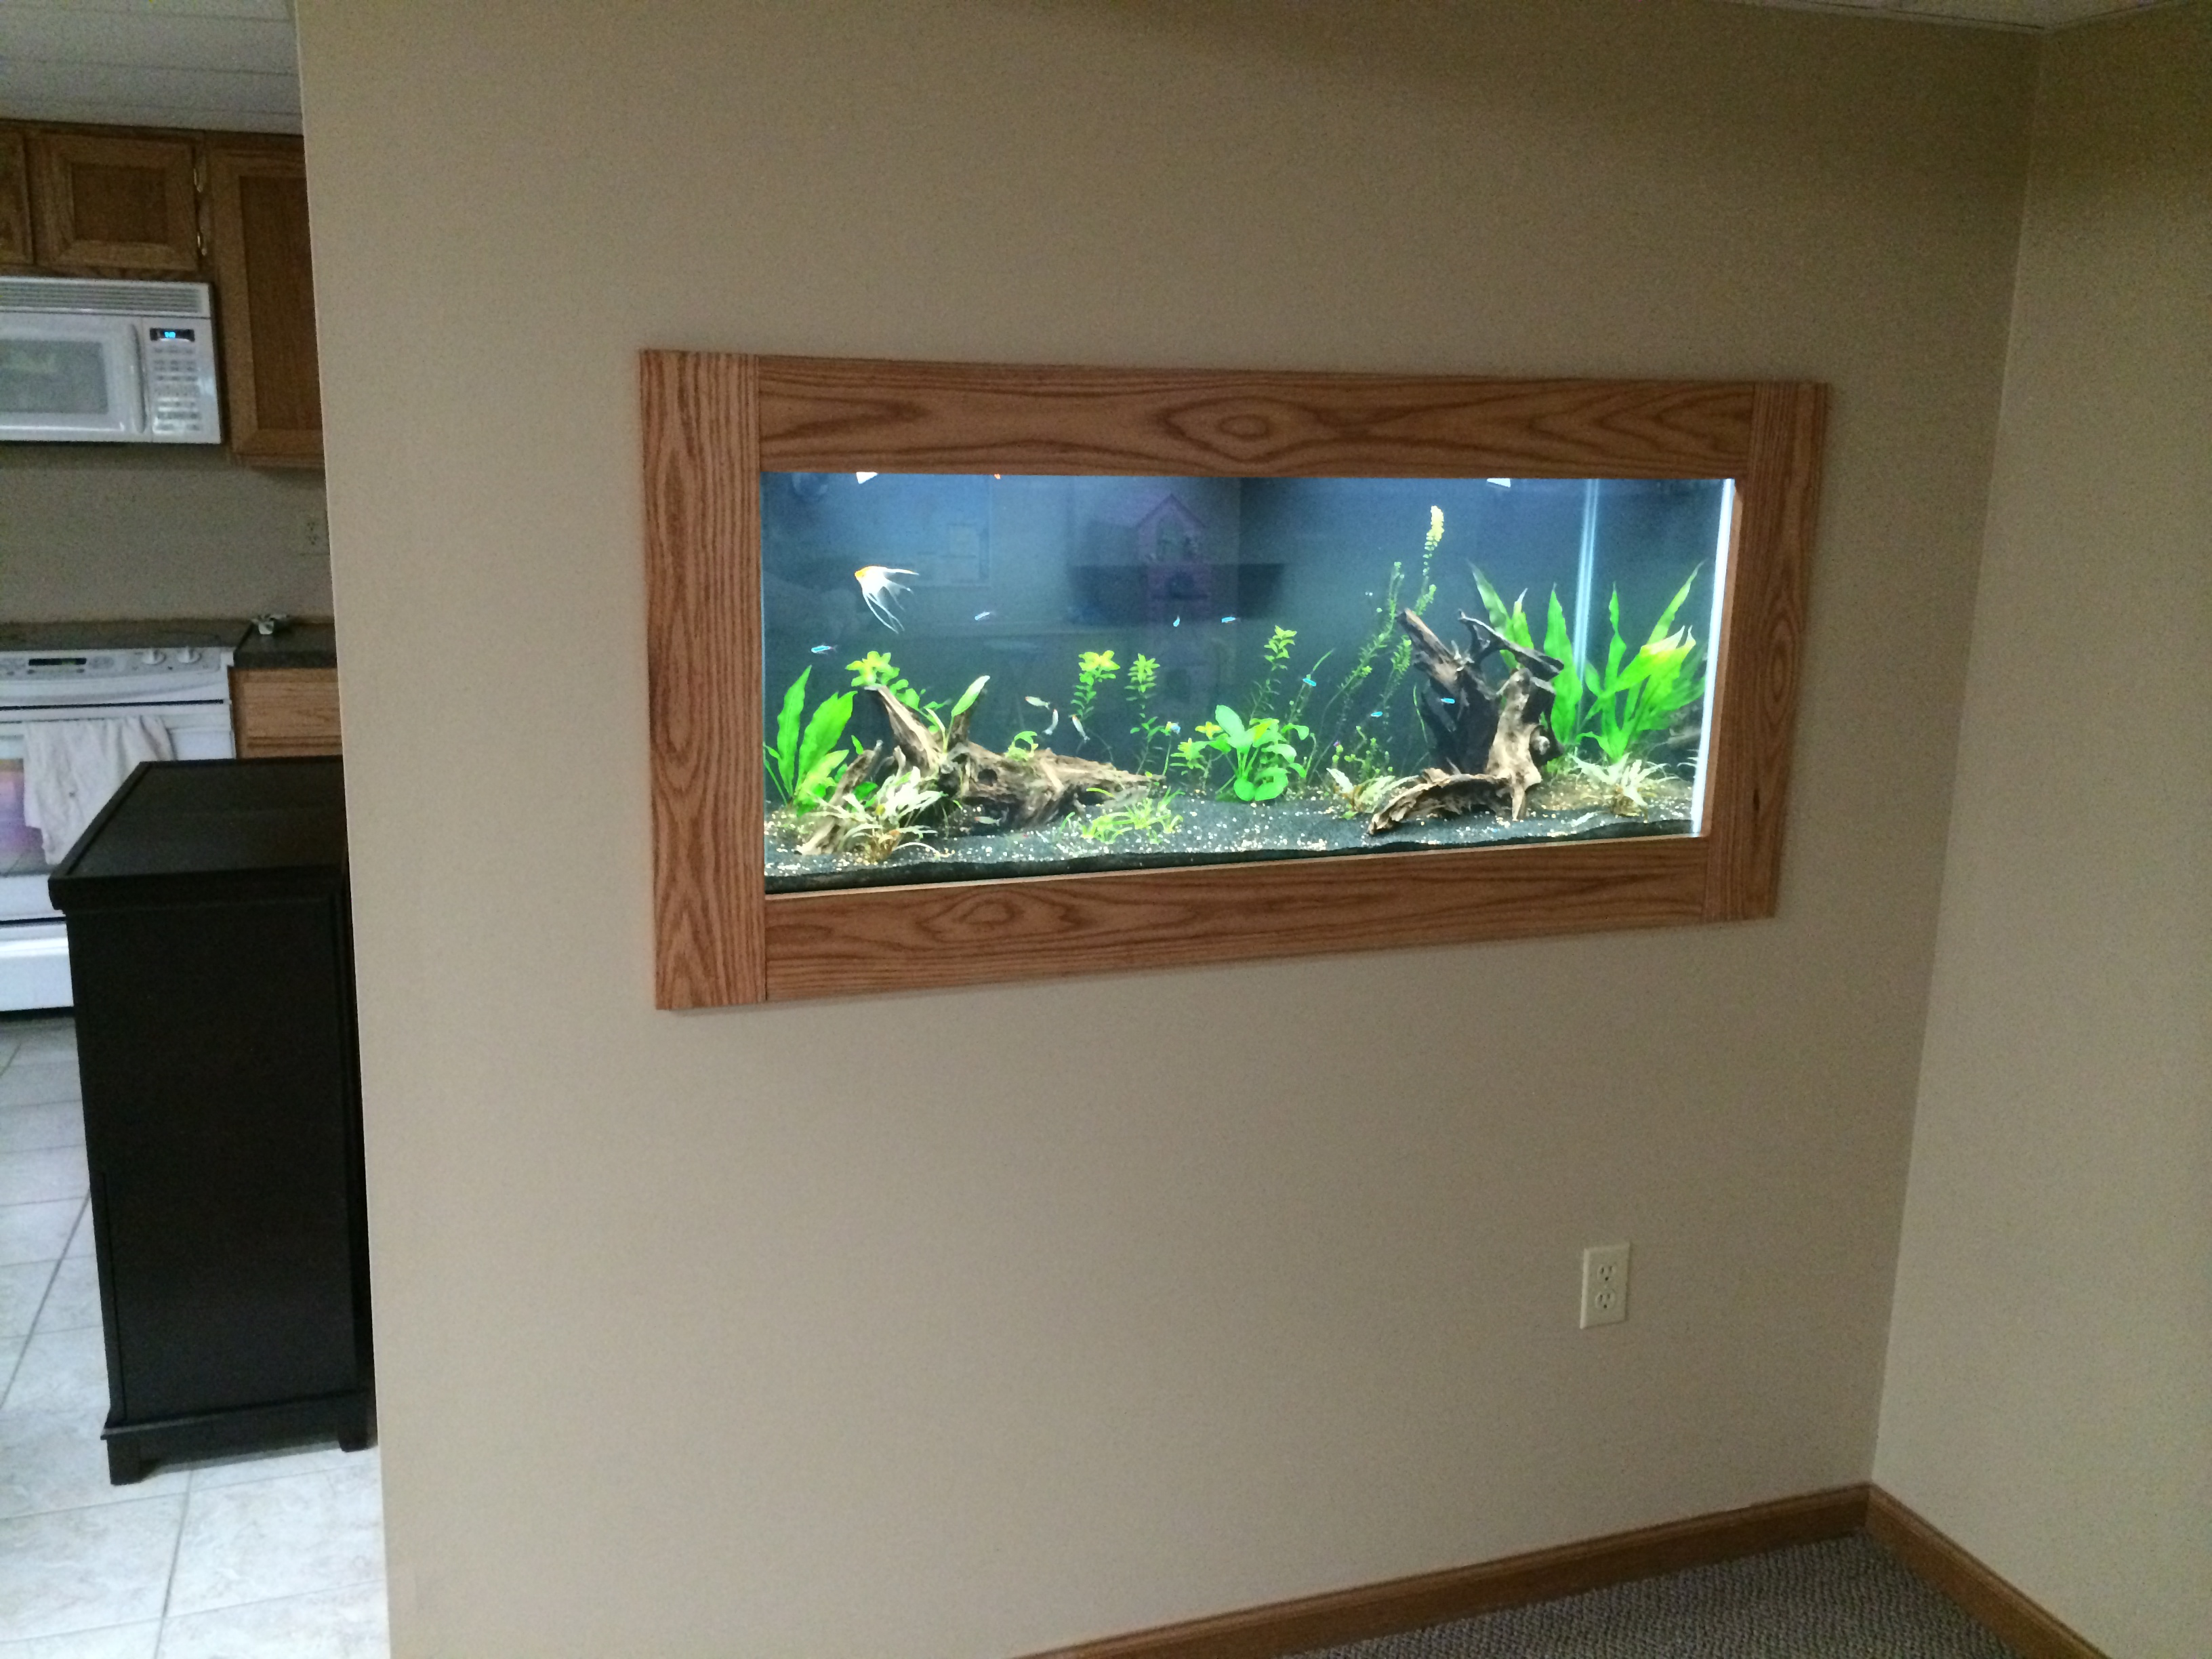 My in wall 75 gallon planted tank aquarium advice aquarium the tank is a standard 75 gallon 48x18x21 the frame is red oak stained with a pecan satin stain all occupants of the tanks except for the rams were jeuxipadfo Images